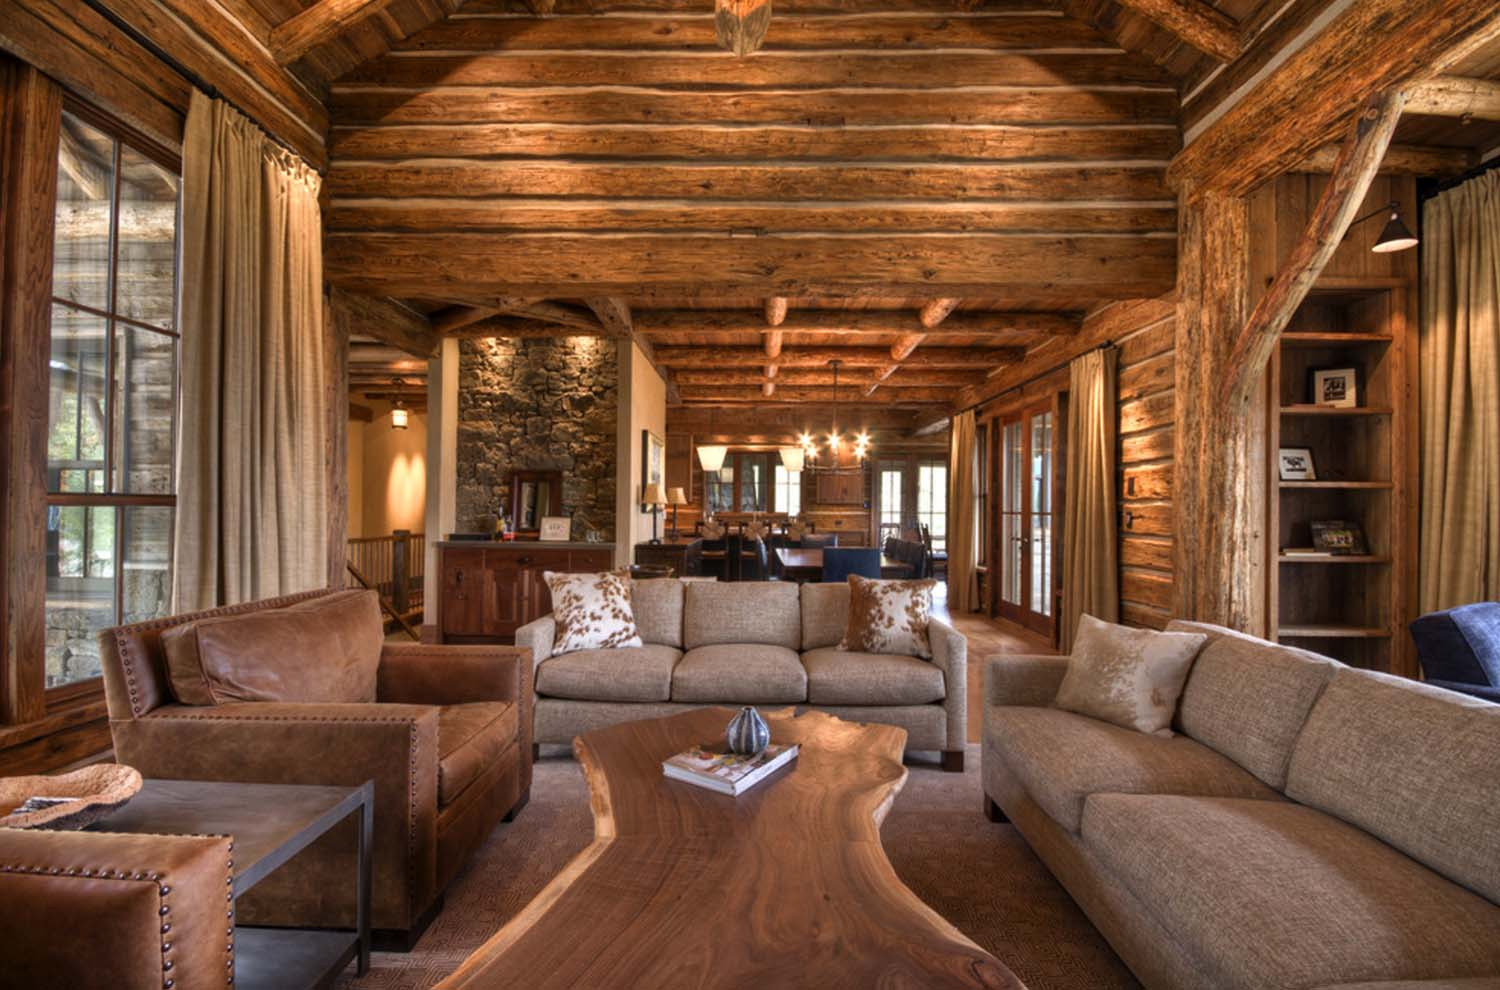 Rustic cabin living room with cowhide cushion on sofas